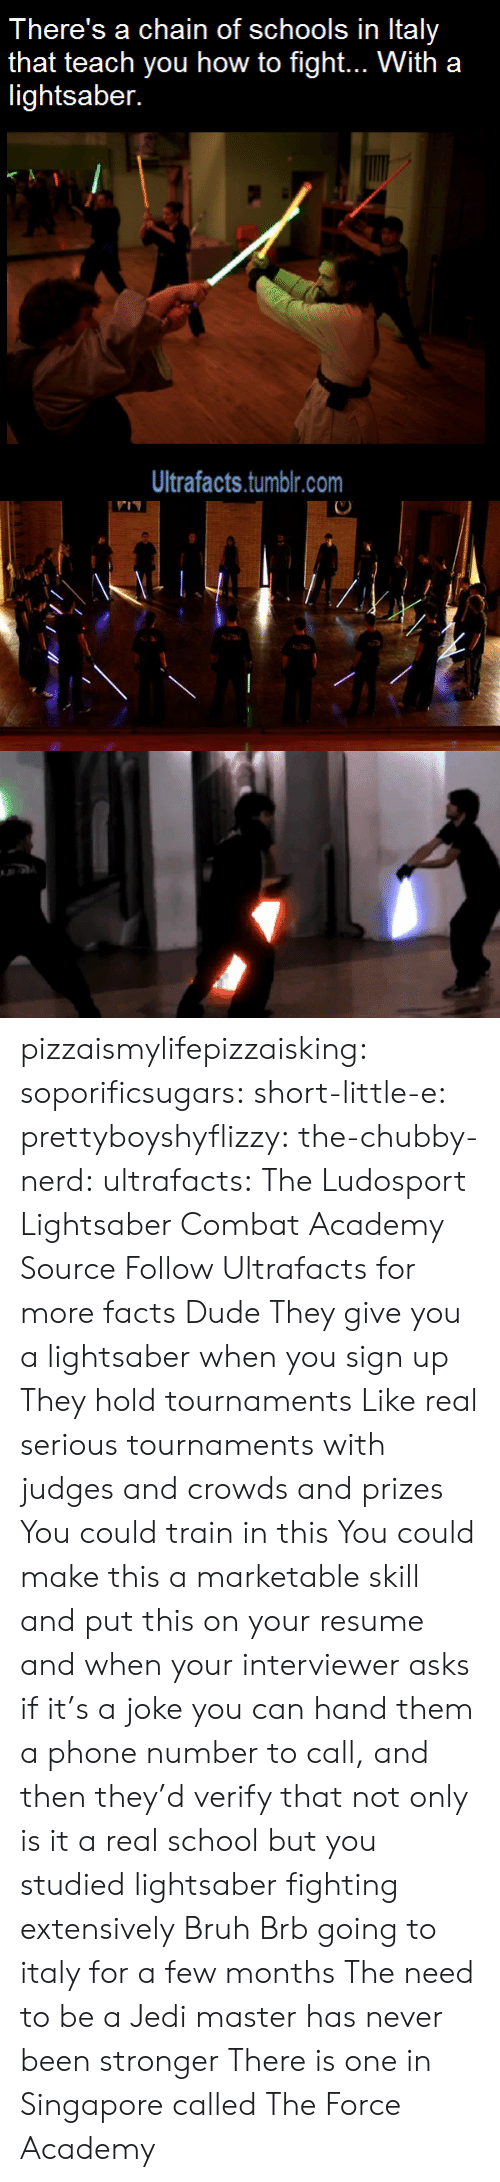 kotaku: There's a chain of schools in Italy  that teach you how to fight... With a  lightsaber.  Ultrafacts.tumblr.com pizzaismylifepizzaisking:  soporificsugars:  short-little-e:  prettyboyshyflizzy:  the-chubby-nerd:  ultrafacts:  The Ludosport Lightsaber Combat Academy Source Follow Ultrafacts for more facts  Dude They give you a lightsaber when you sign up They hold tournaments Like real serious tournaments with judges and crowds and prizes You could train in this You could make this a marketable skill and put this on your resume and when your interviewer asks if it's a joke you can hand them a phone number to call, and then they'd verify that not only is it a real school but you studied lightsaber fighting extensively  Bruh  Brb going to italy for a few months  The need to be a Jedi master has never been stronger  There is one in Singapore called The Force Academy